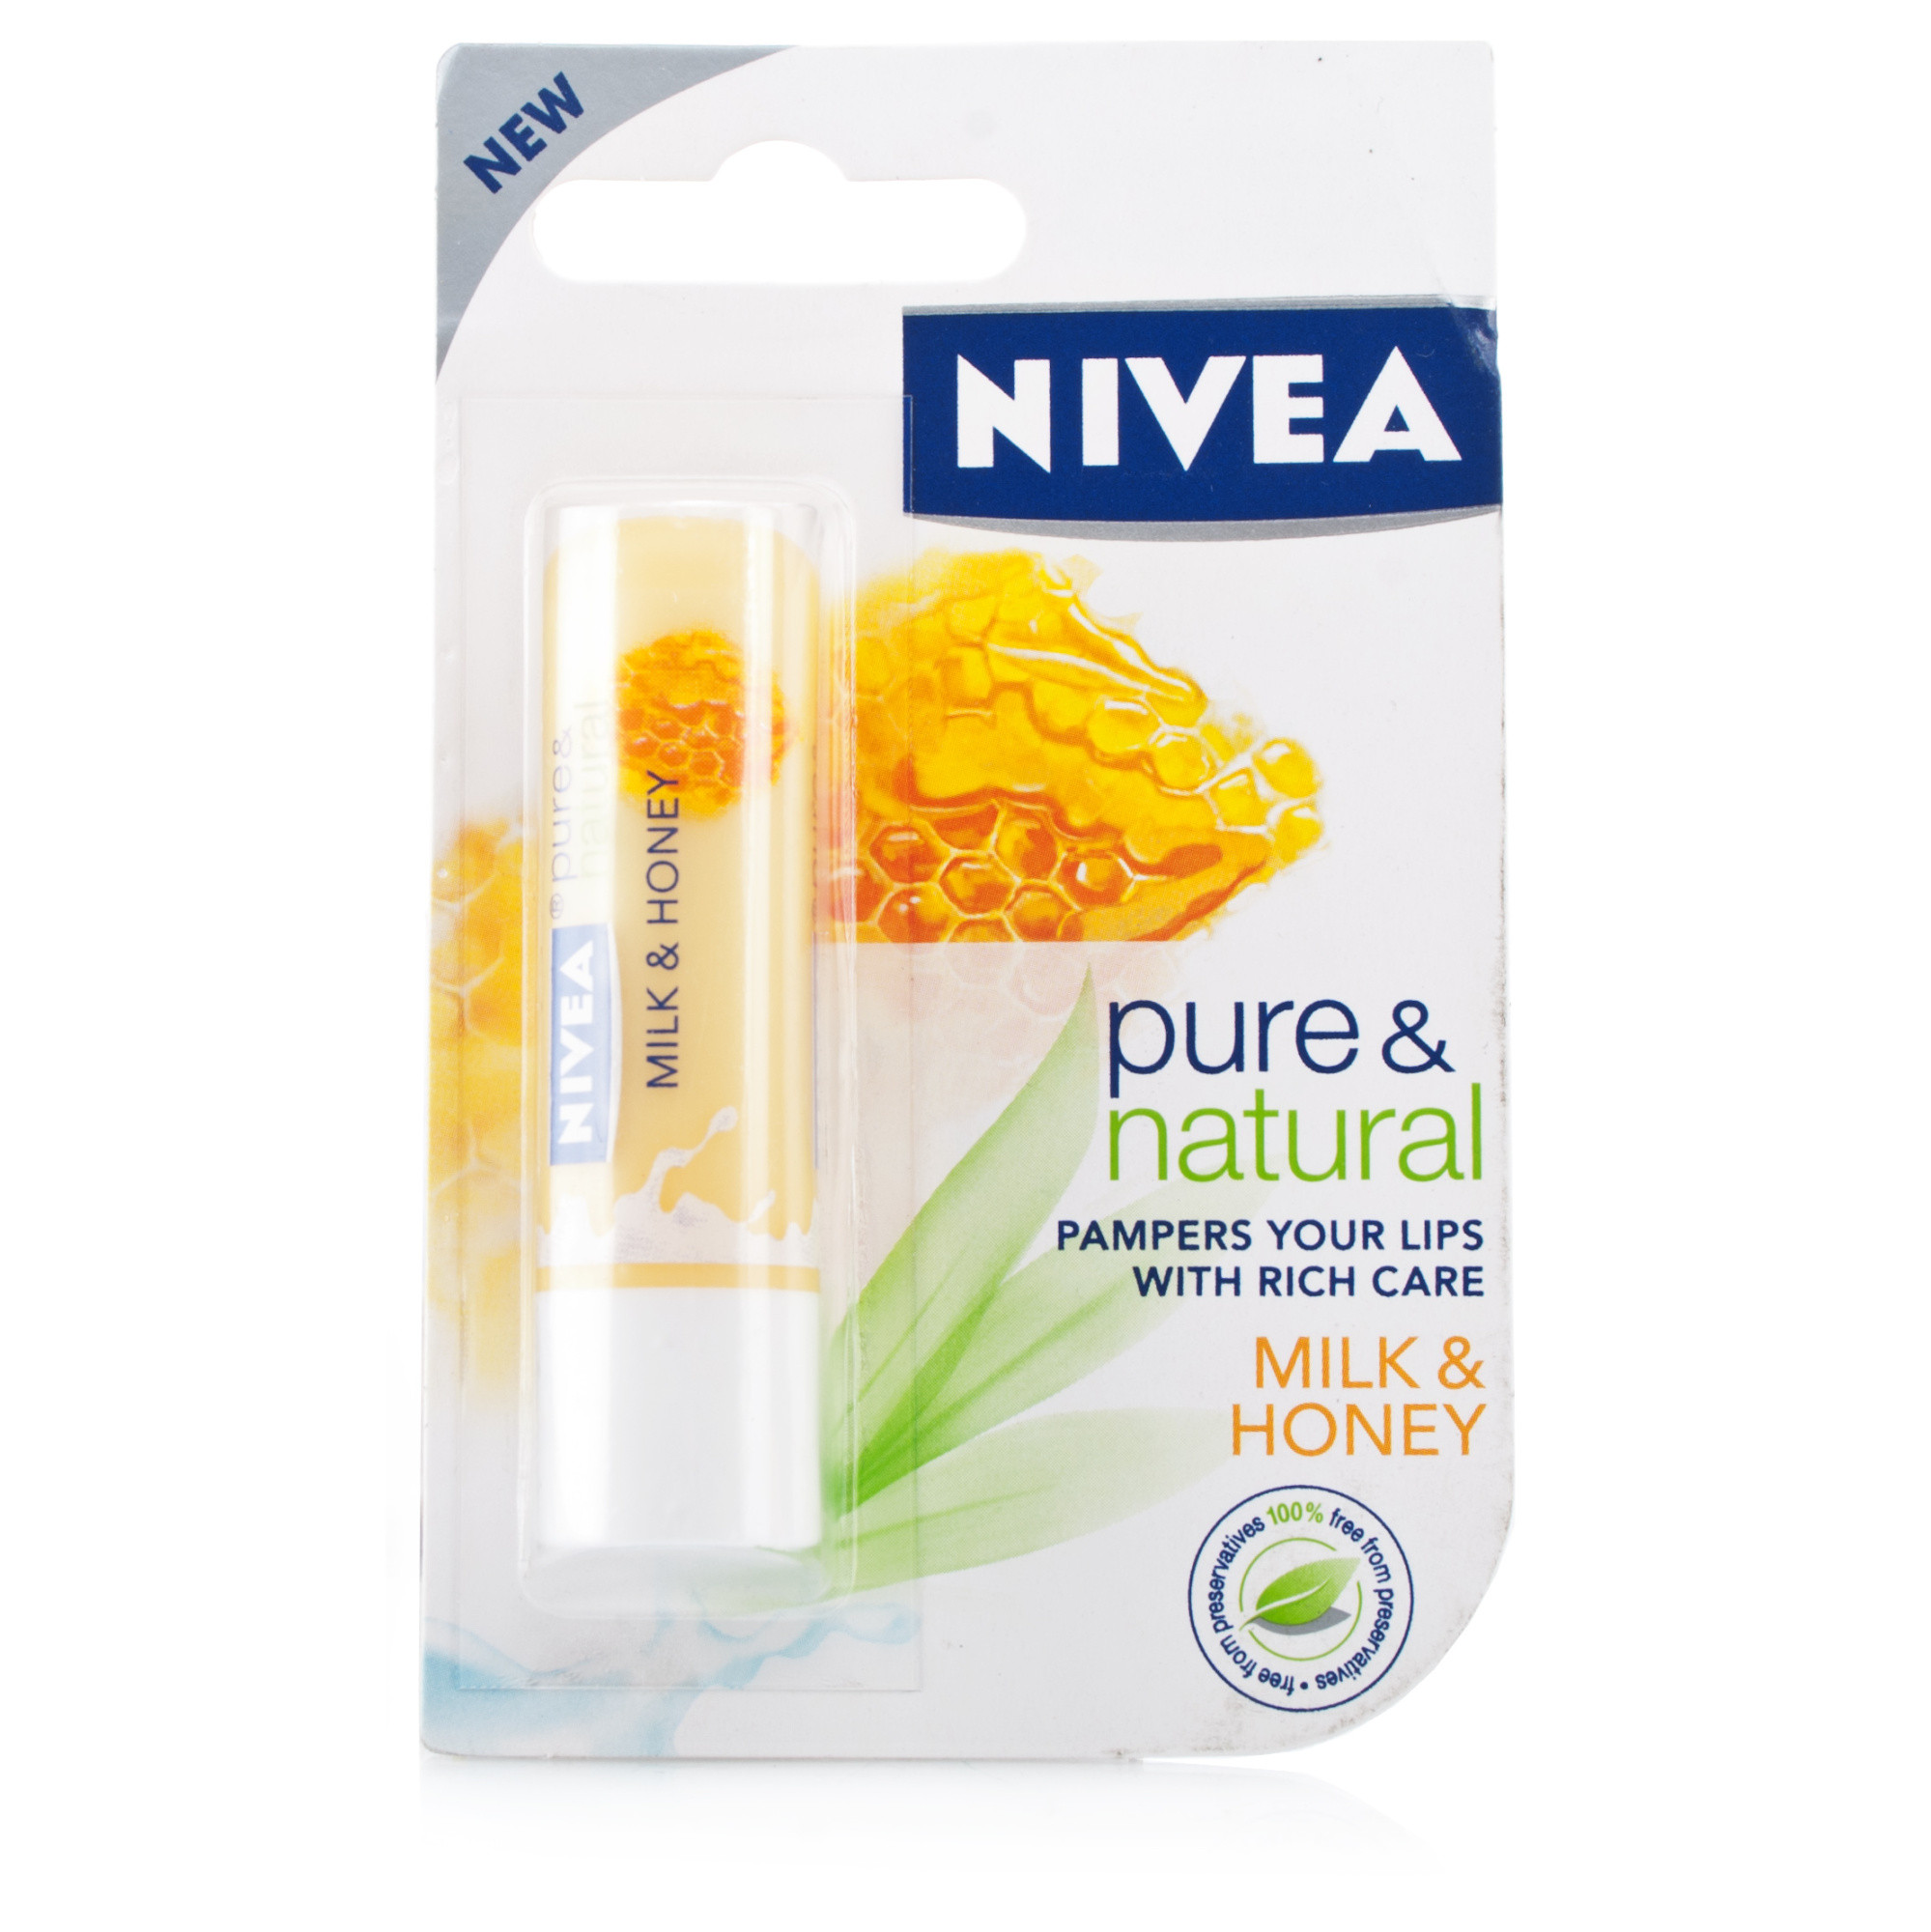 Nivea Pure & Natural Milk & Honey Lip Balm